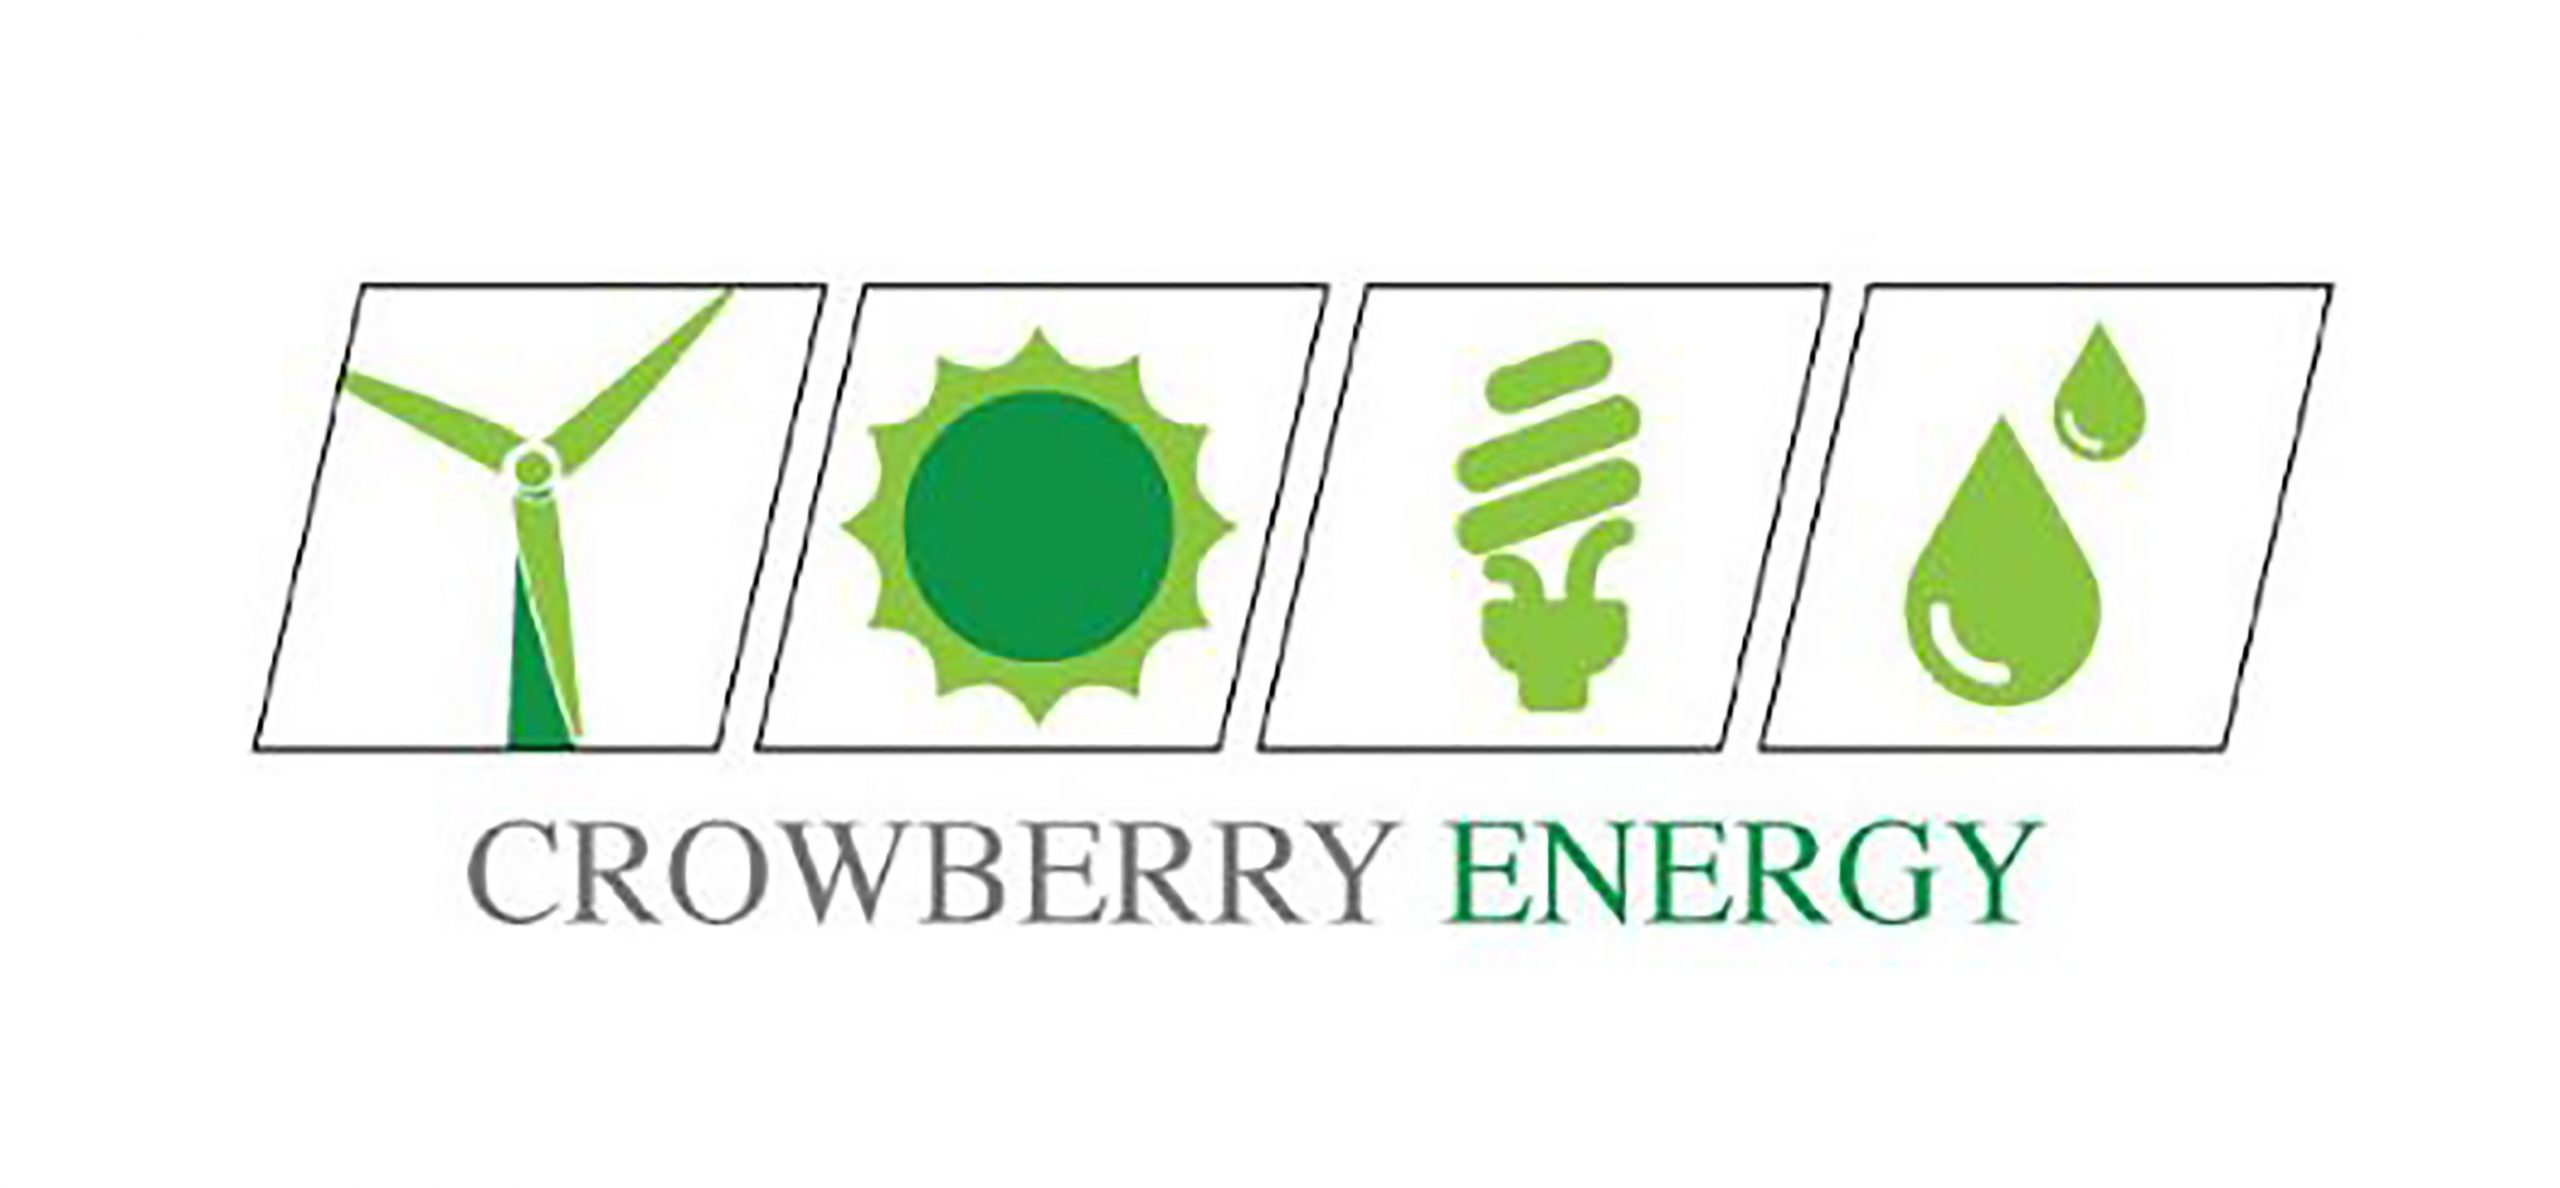 Crowberry Energy